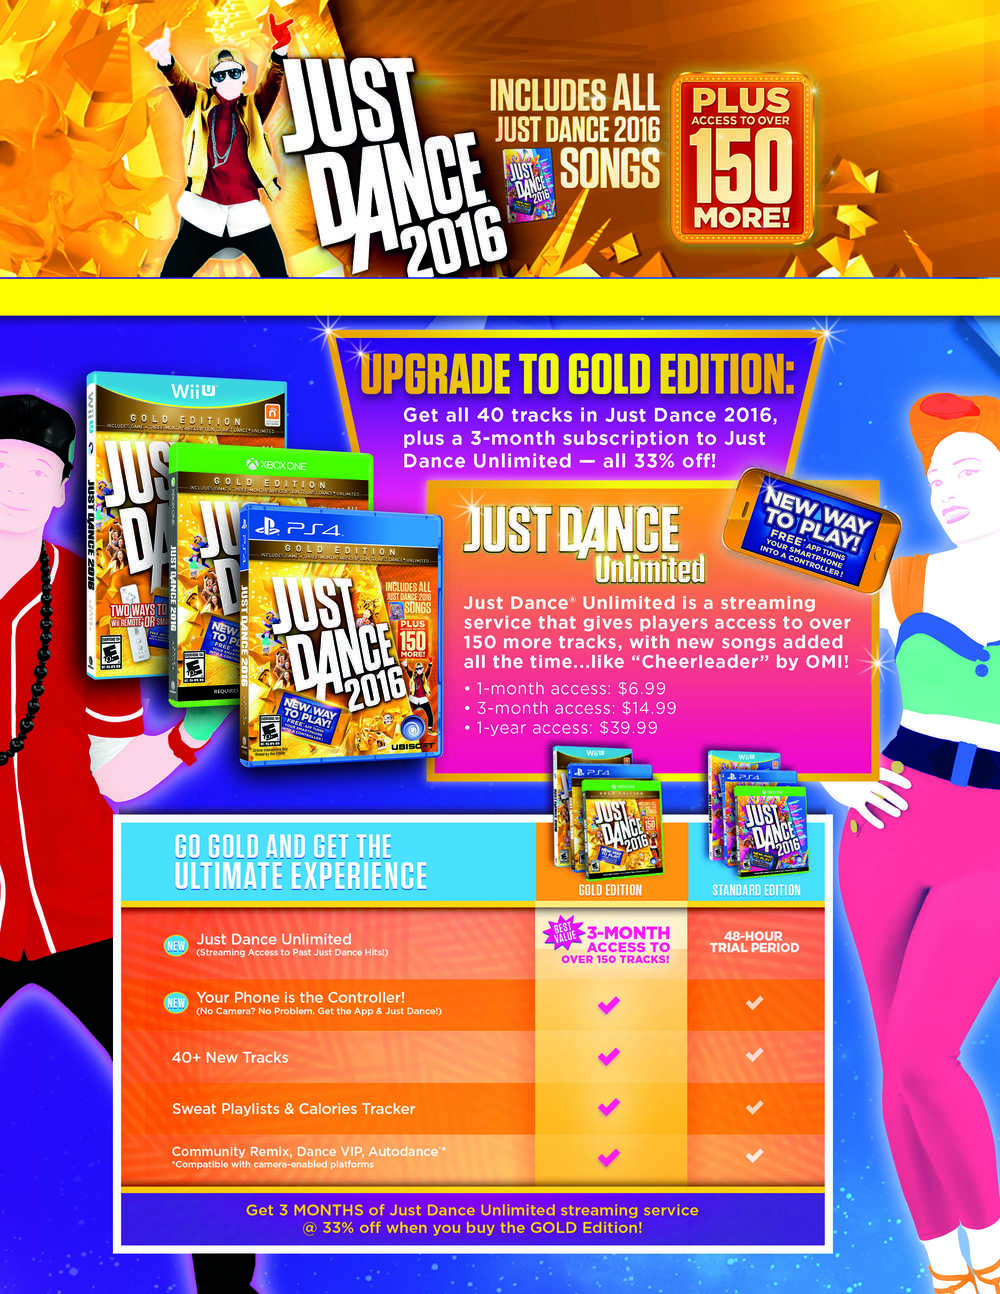 Just Dance 2016 Info Sheet